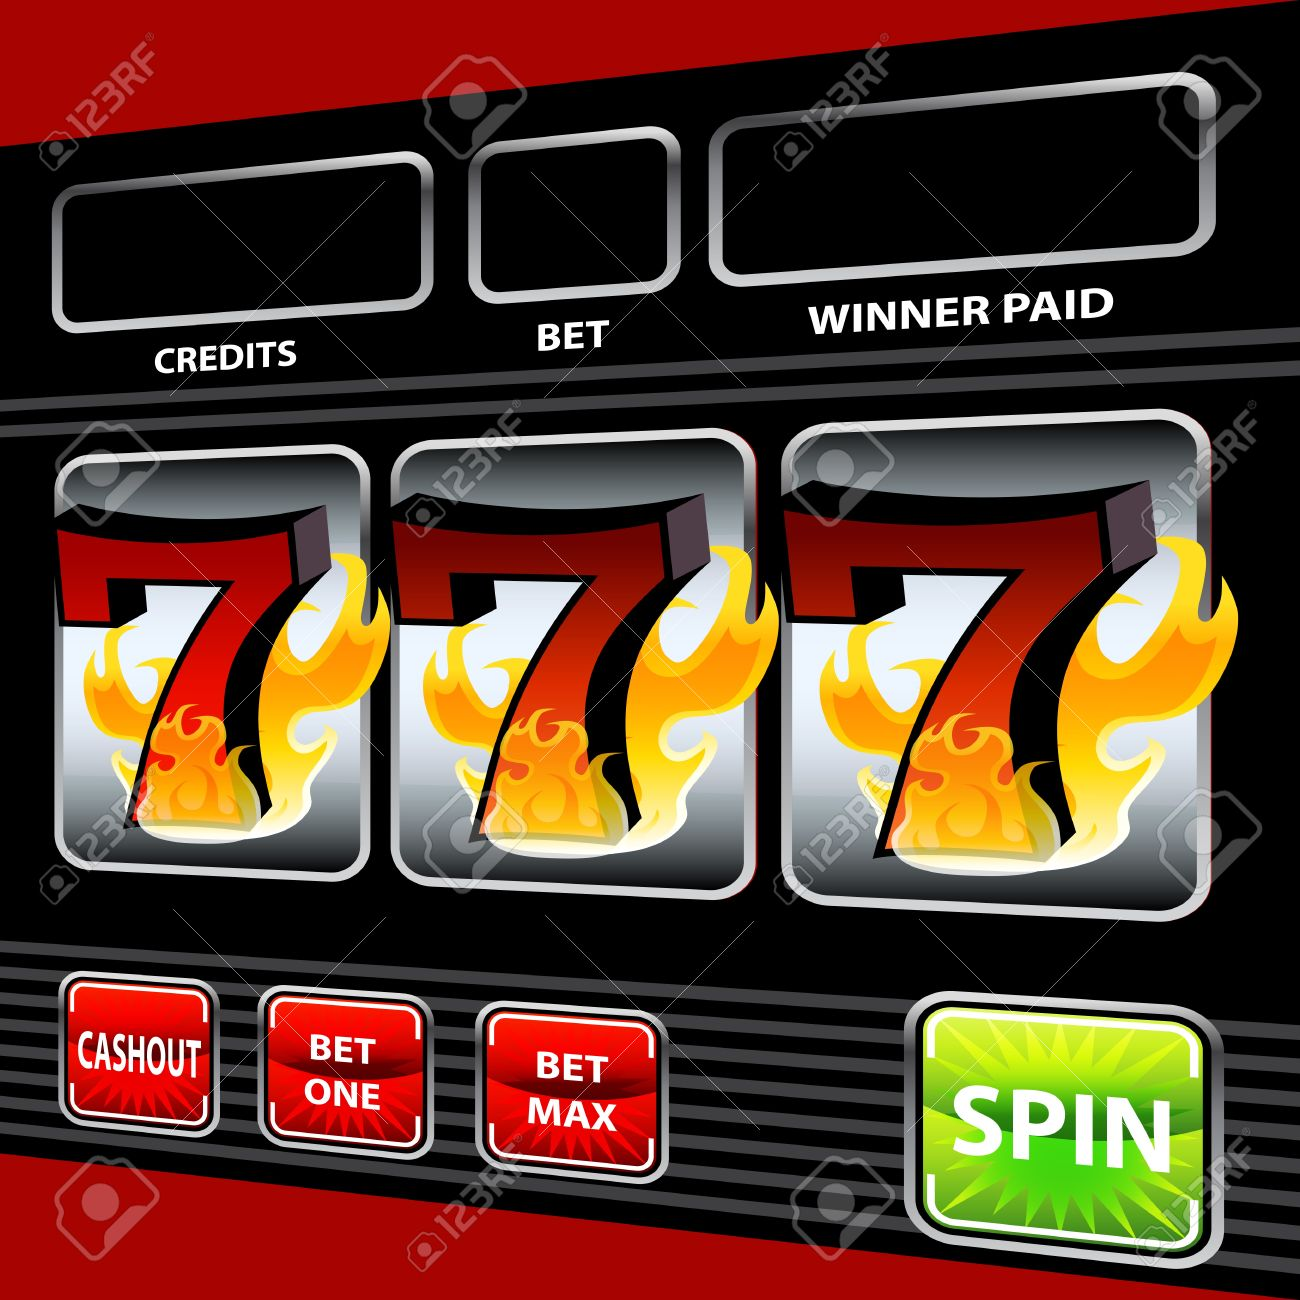 Flaming 7s slot machines